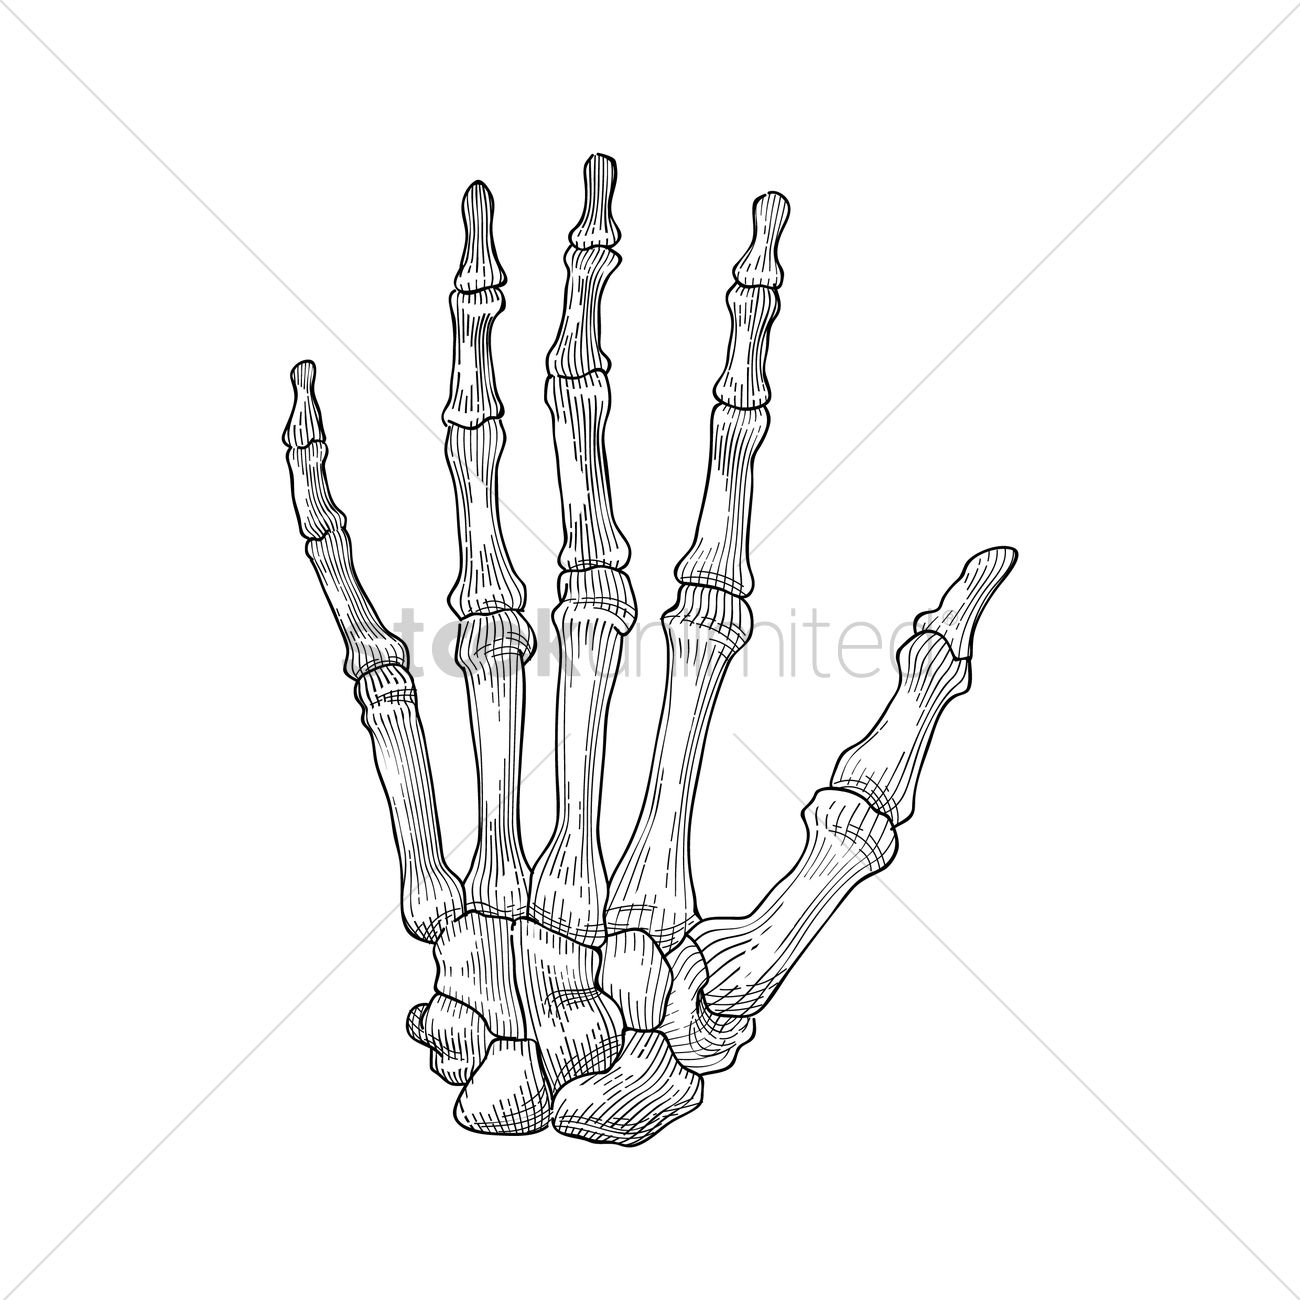 Skeleton hand Vector Image - 1807689 | StockUnlimited